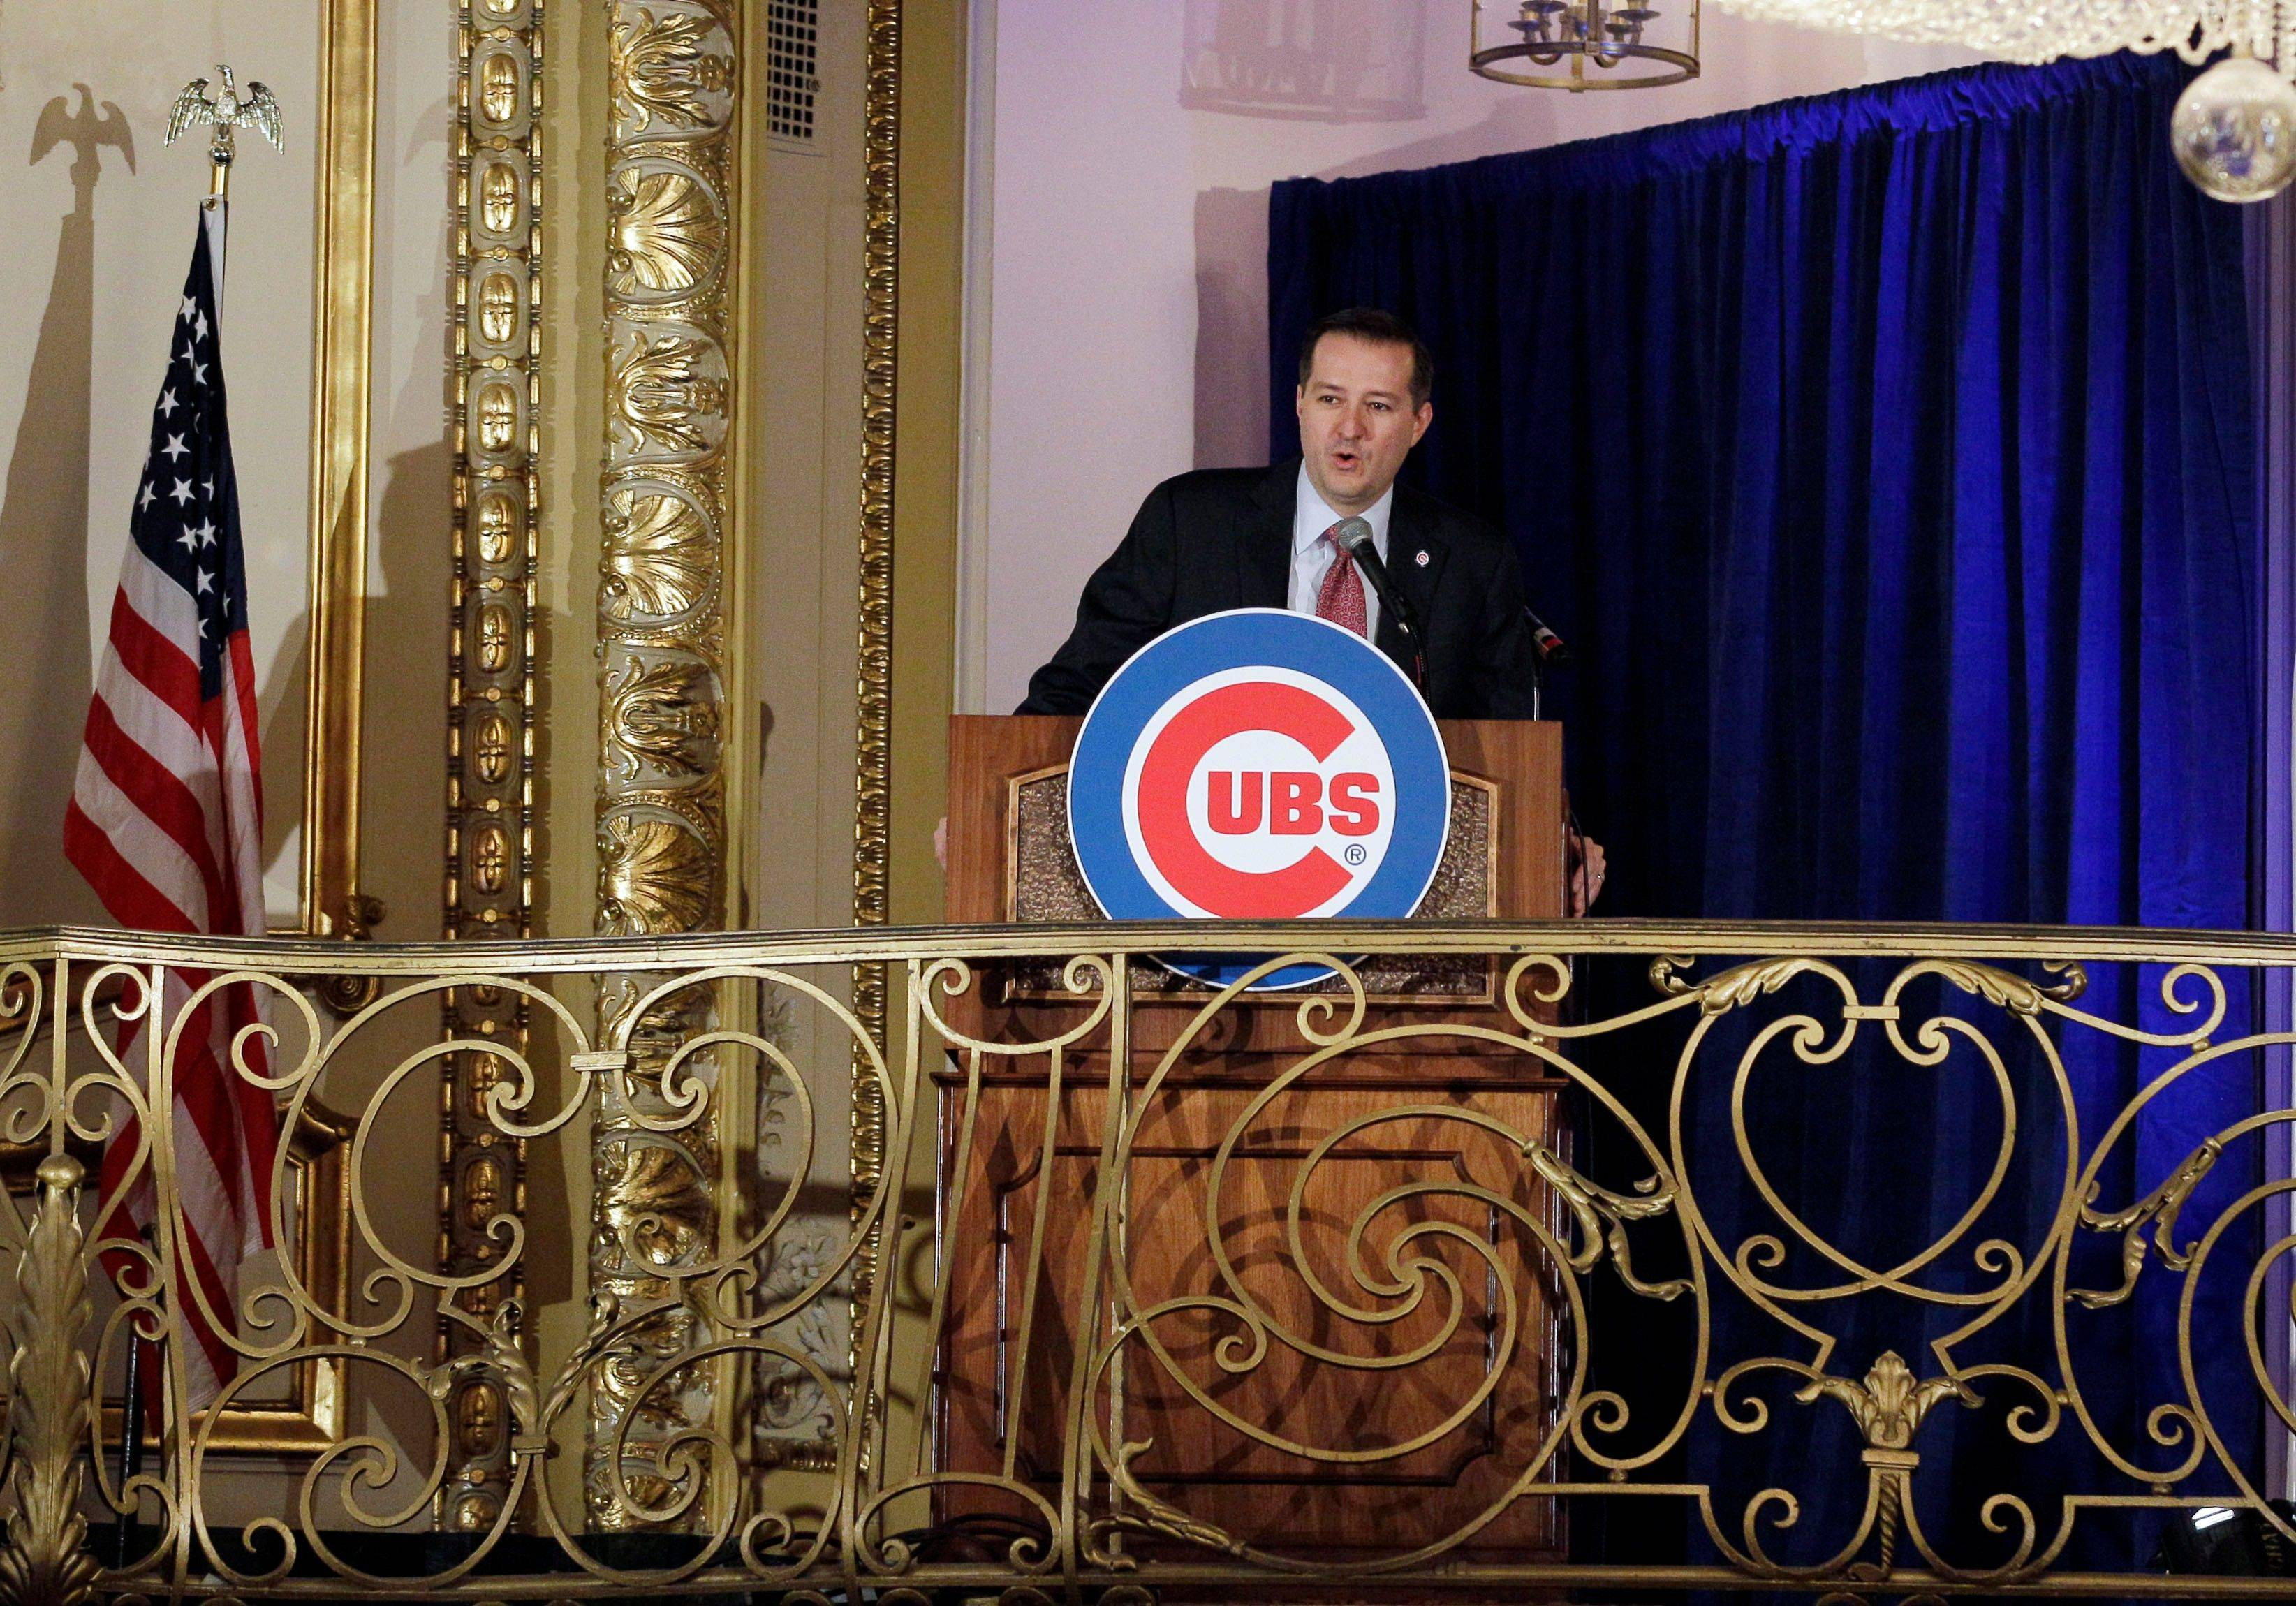 Chicago Cubs Chairman Tom Ricketts speaks during the 27th Annual Chicago Cubs Convention in Chicago on Friday, Jan. 13, 2012.